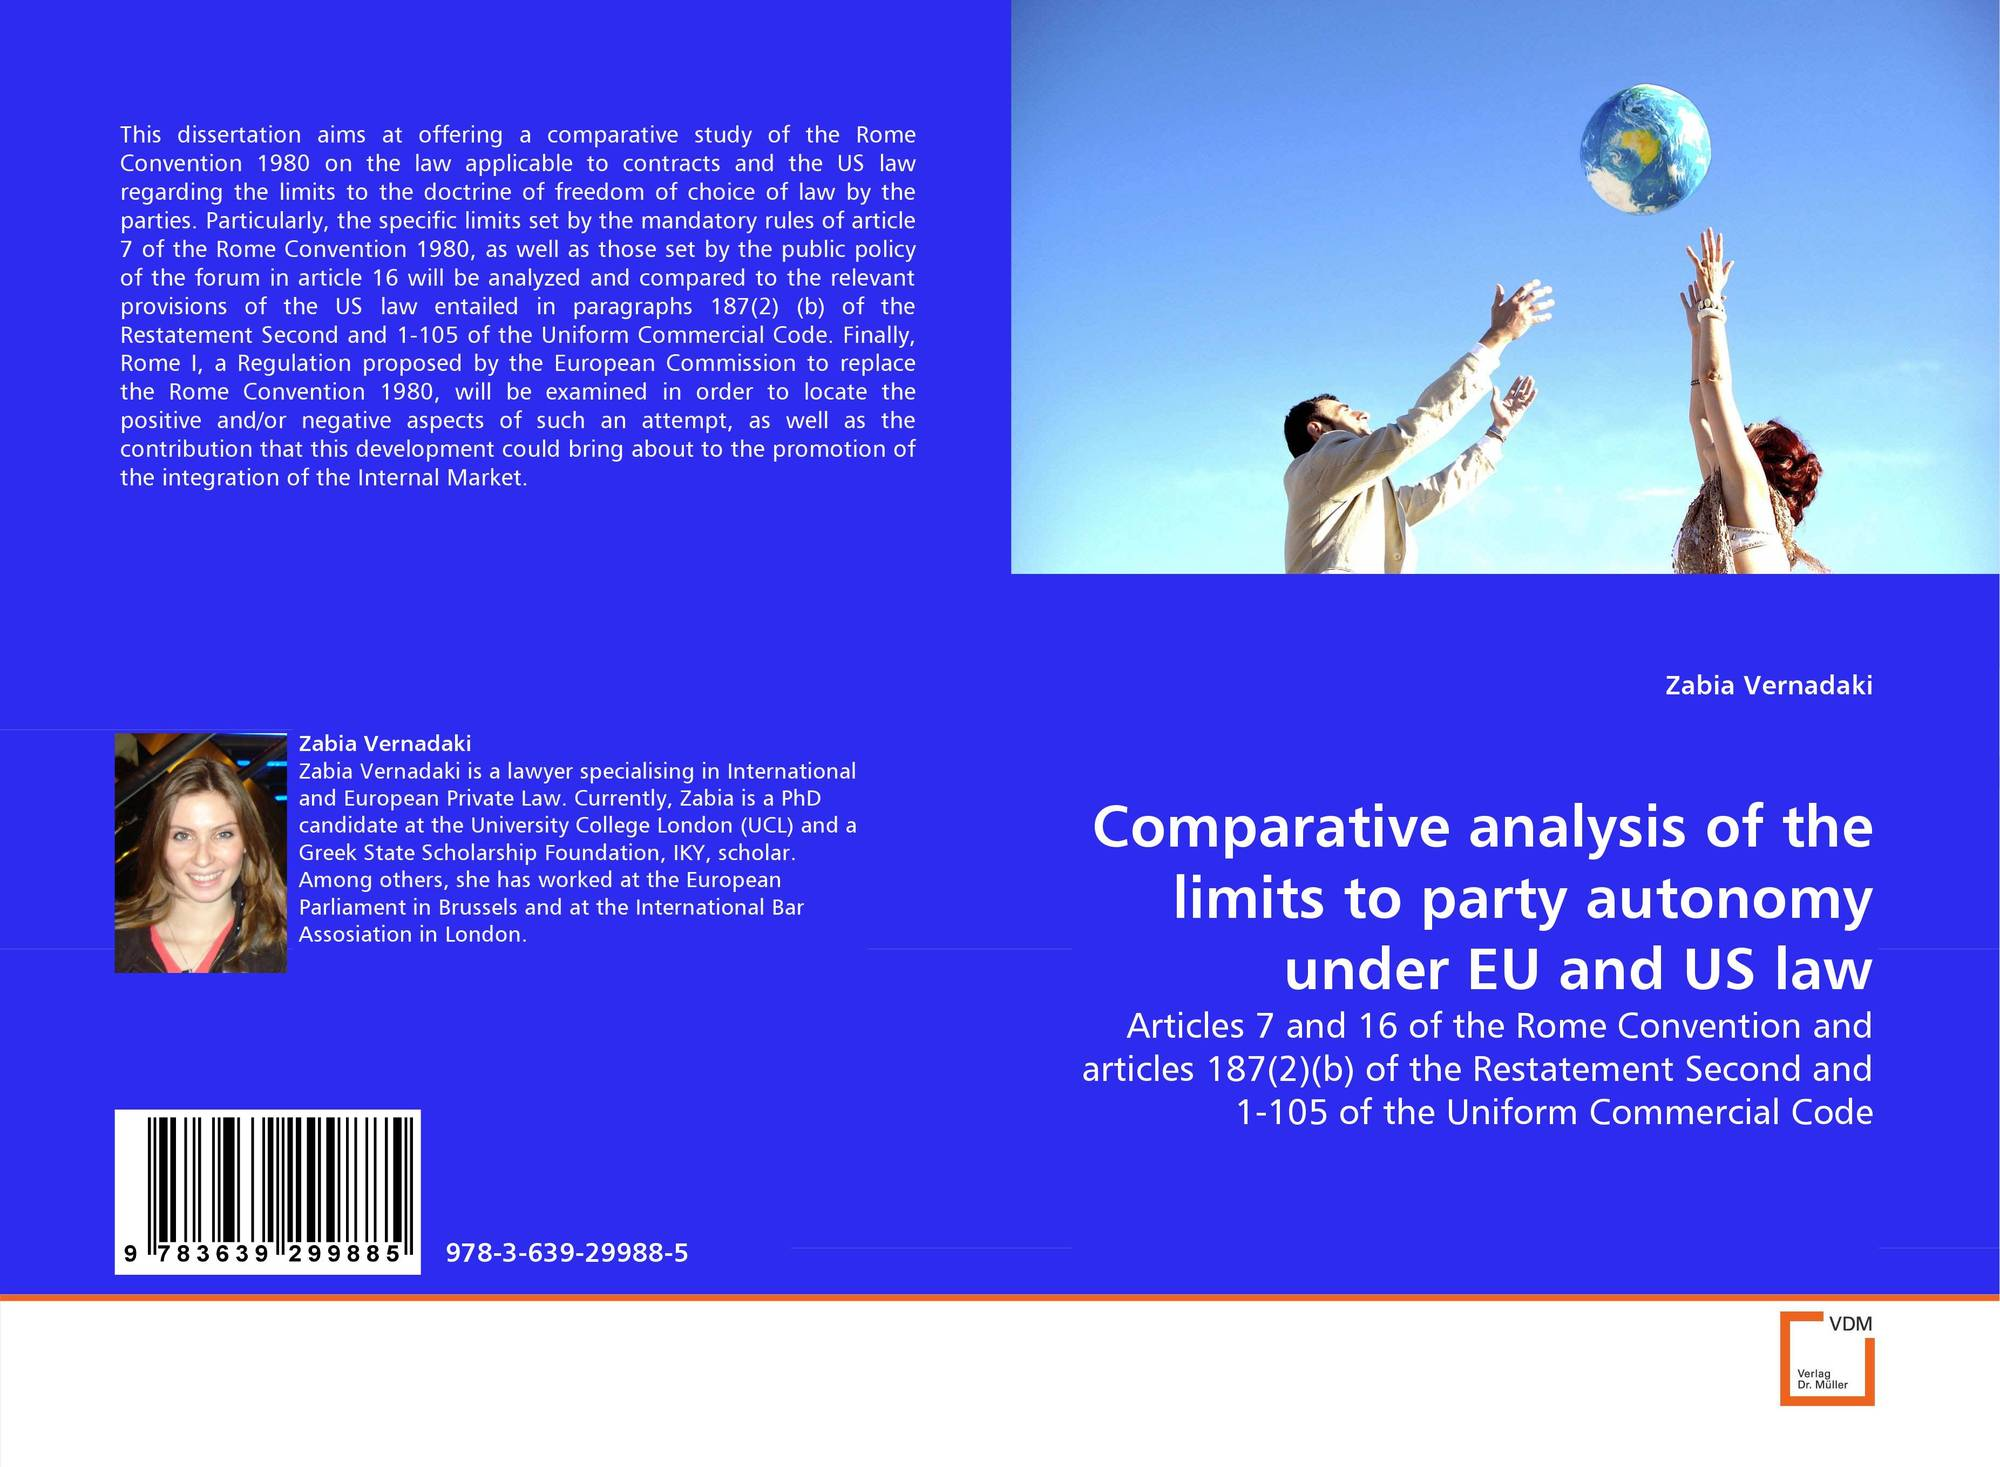 comparative analysis of sport in developed Comparative elite activity improvement: platforms, constructions and public policy specializes in the id and improvement of elite wearing expertise specially in olympic activities read online or download comparative elite sport development pdf best sports outdoors books.